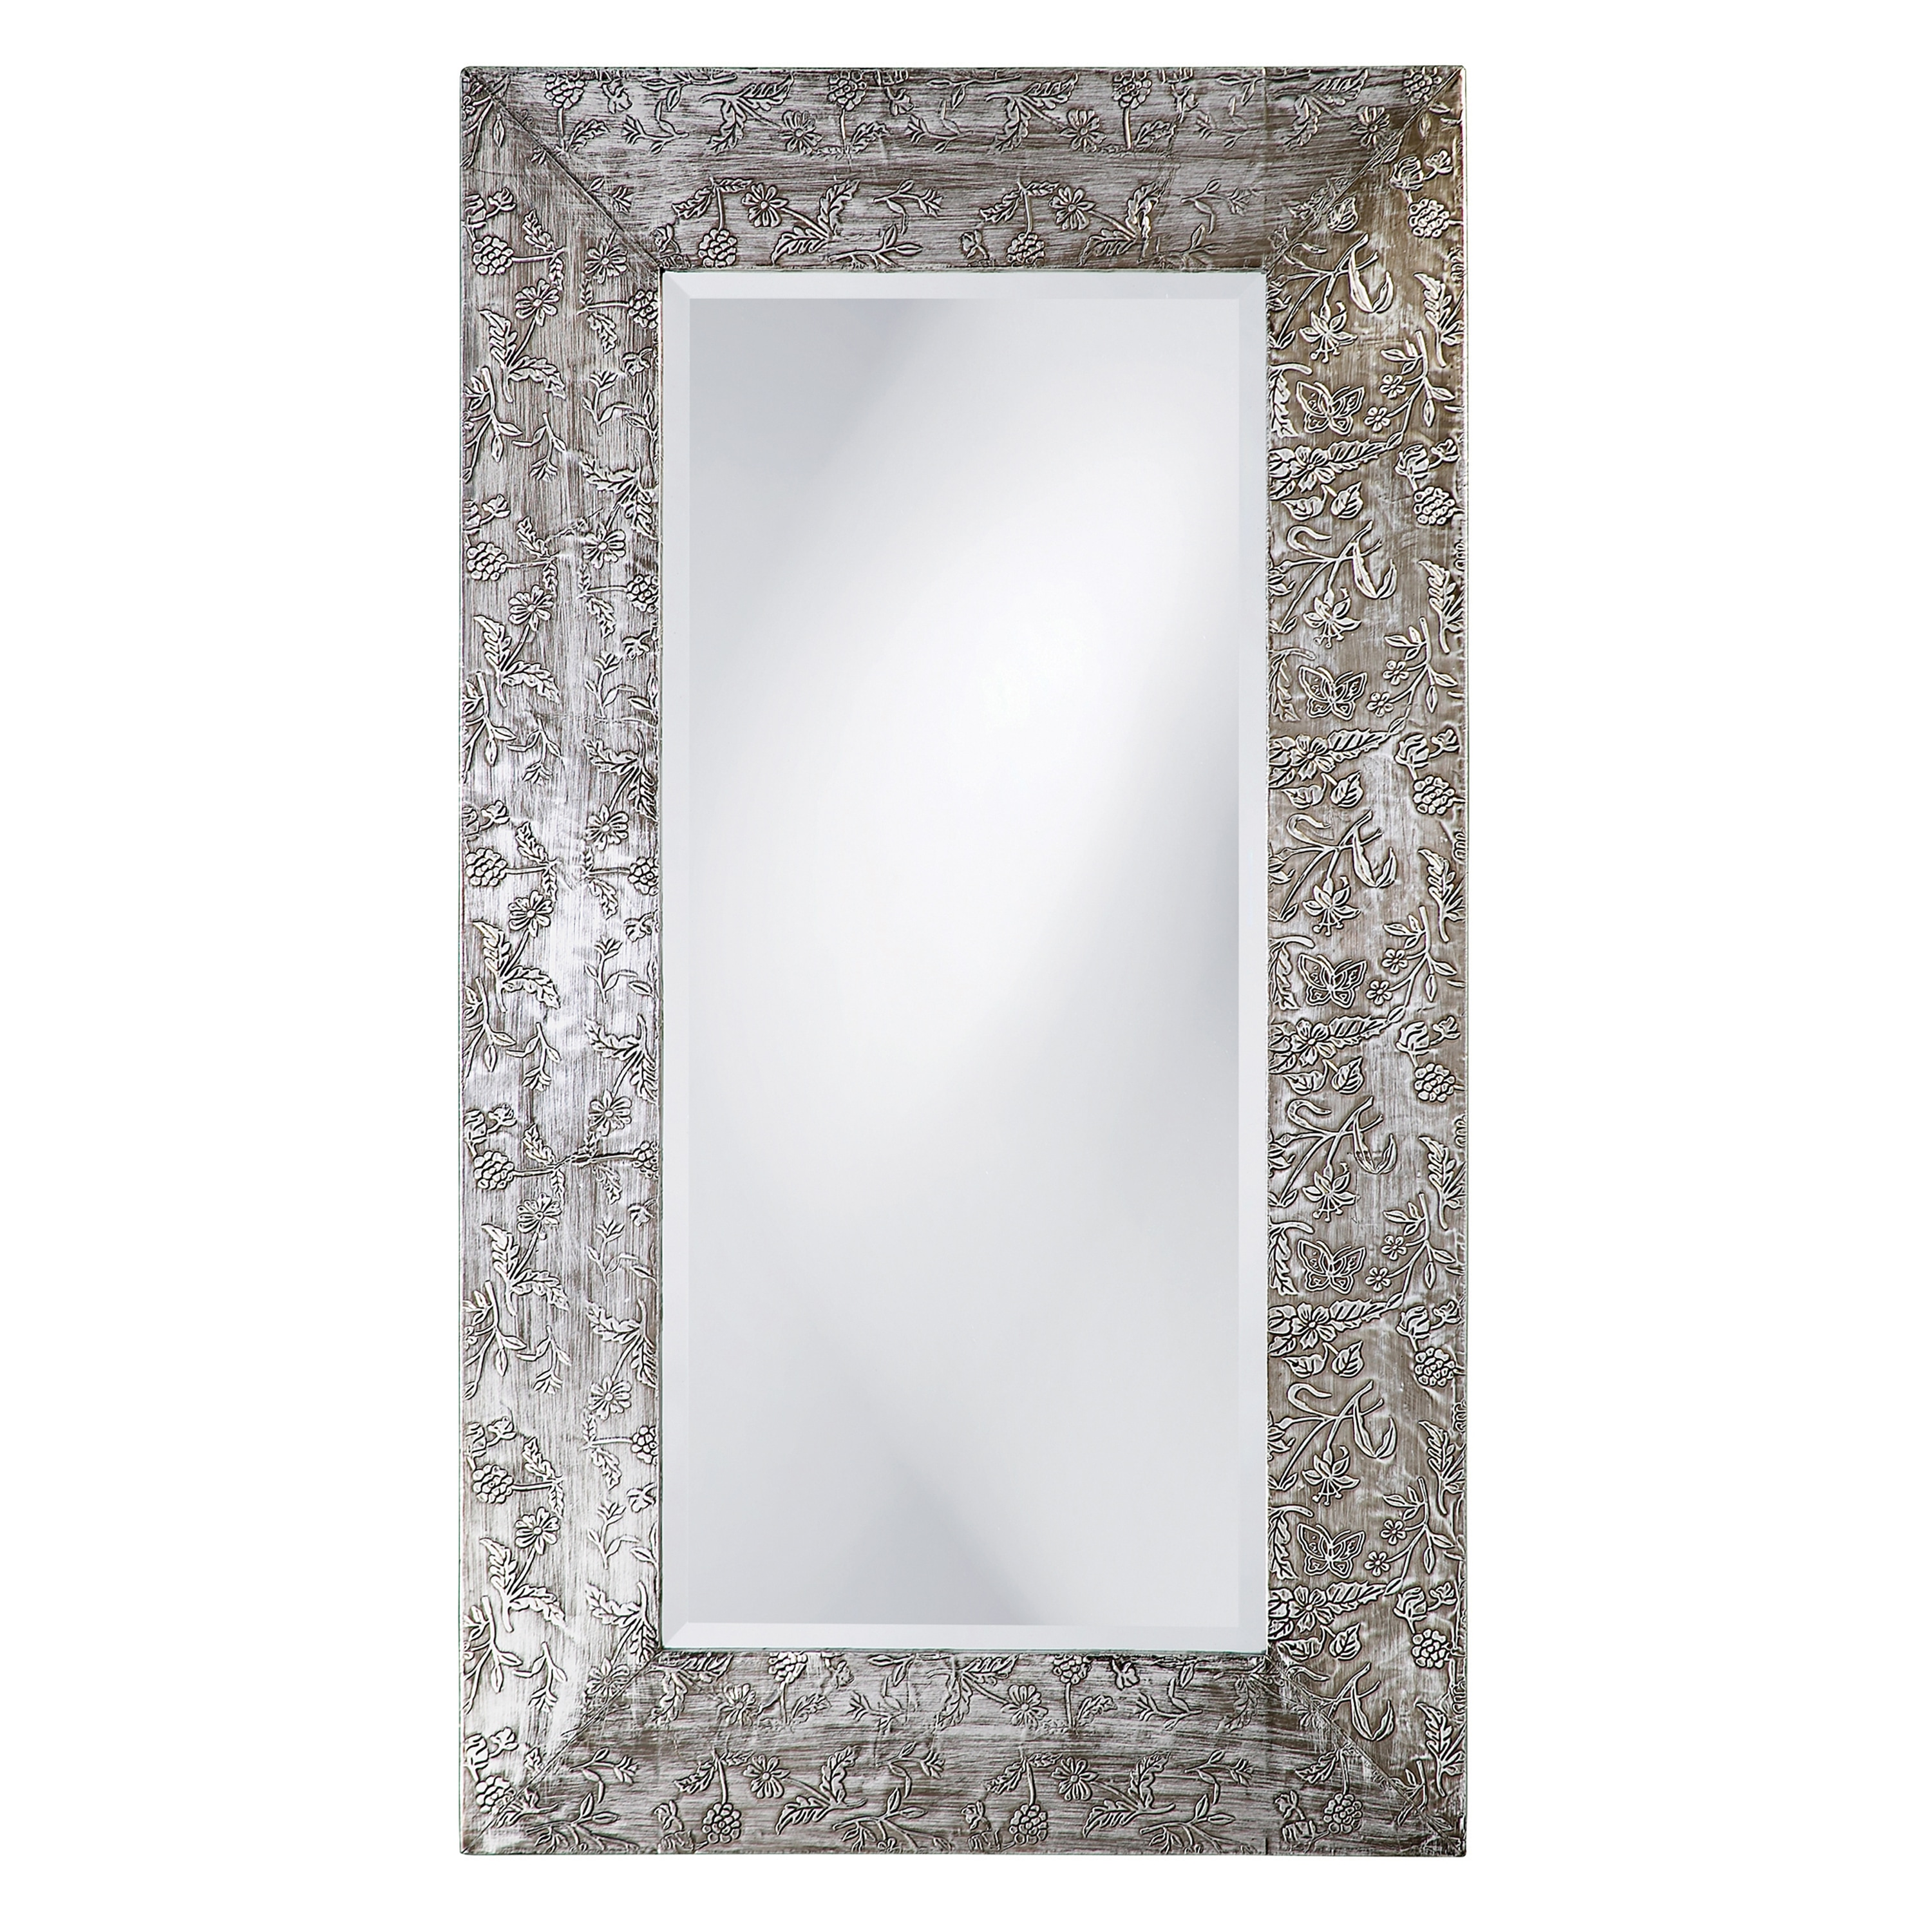 New Zealand Silver Wood Mirror 14040211 Overstock Com Shopping Great Deals On Mirrors